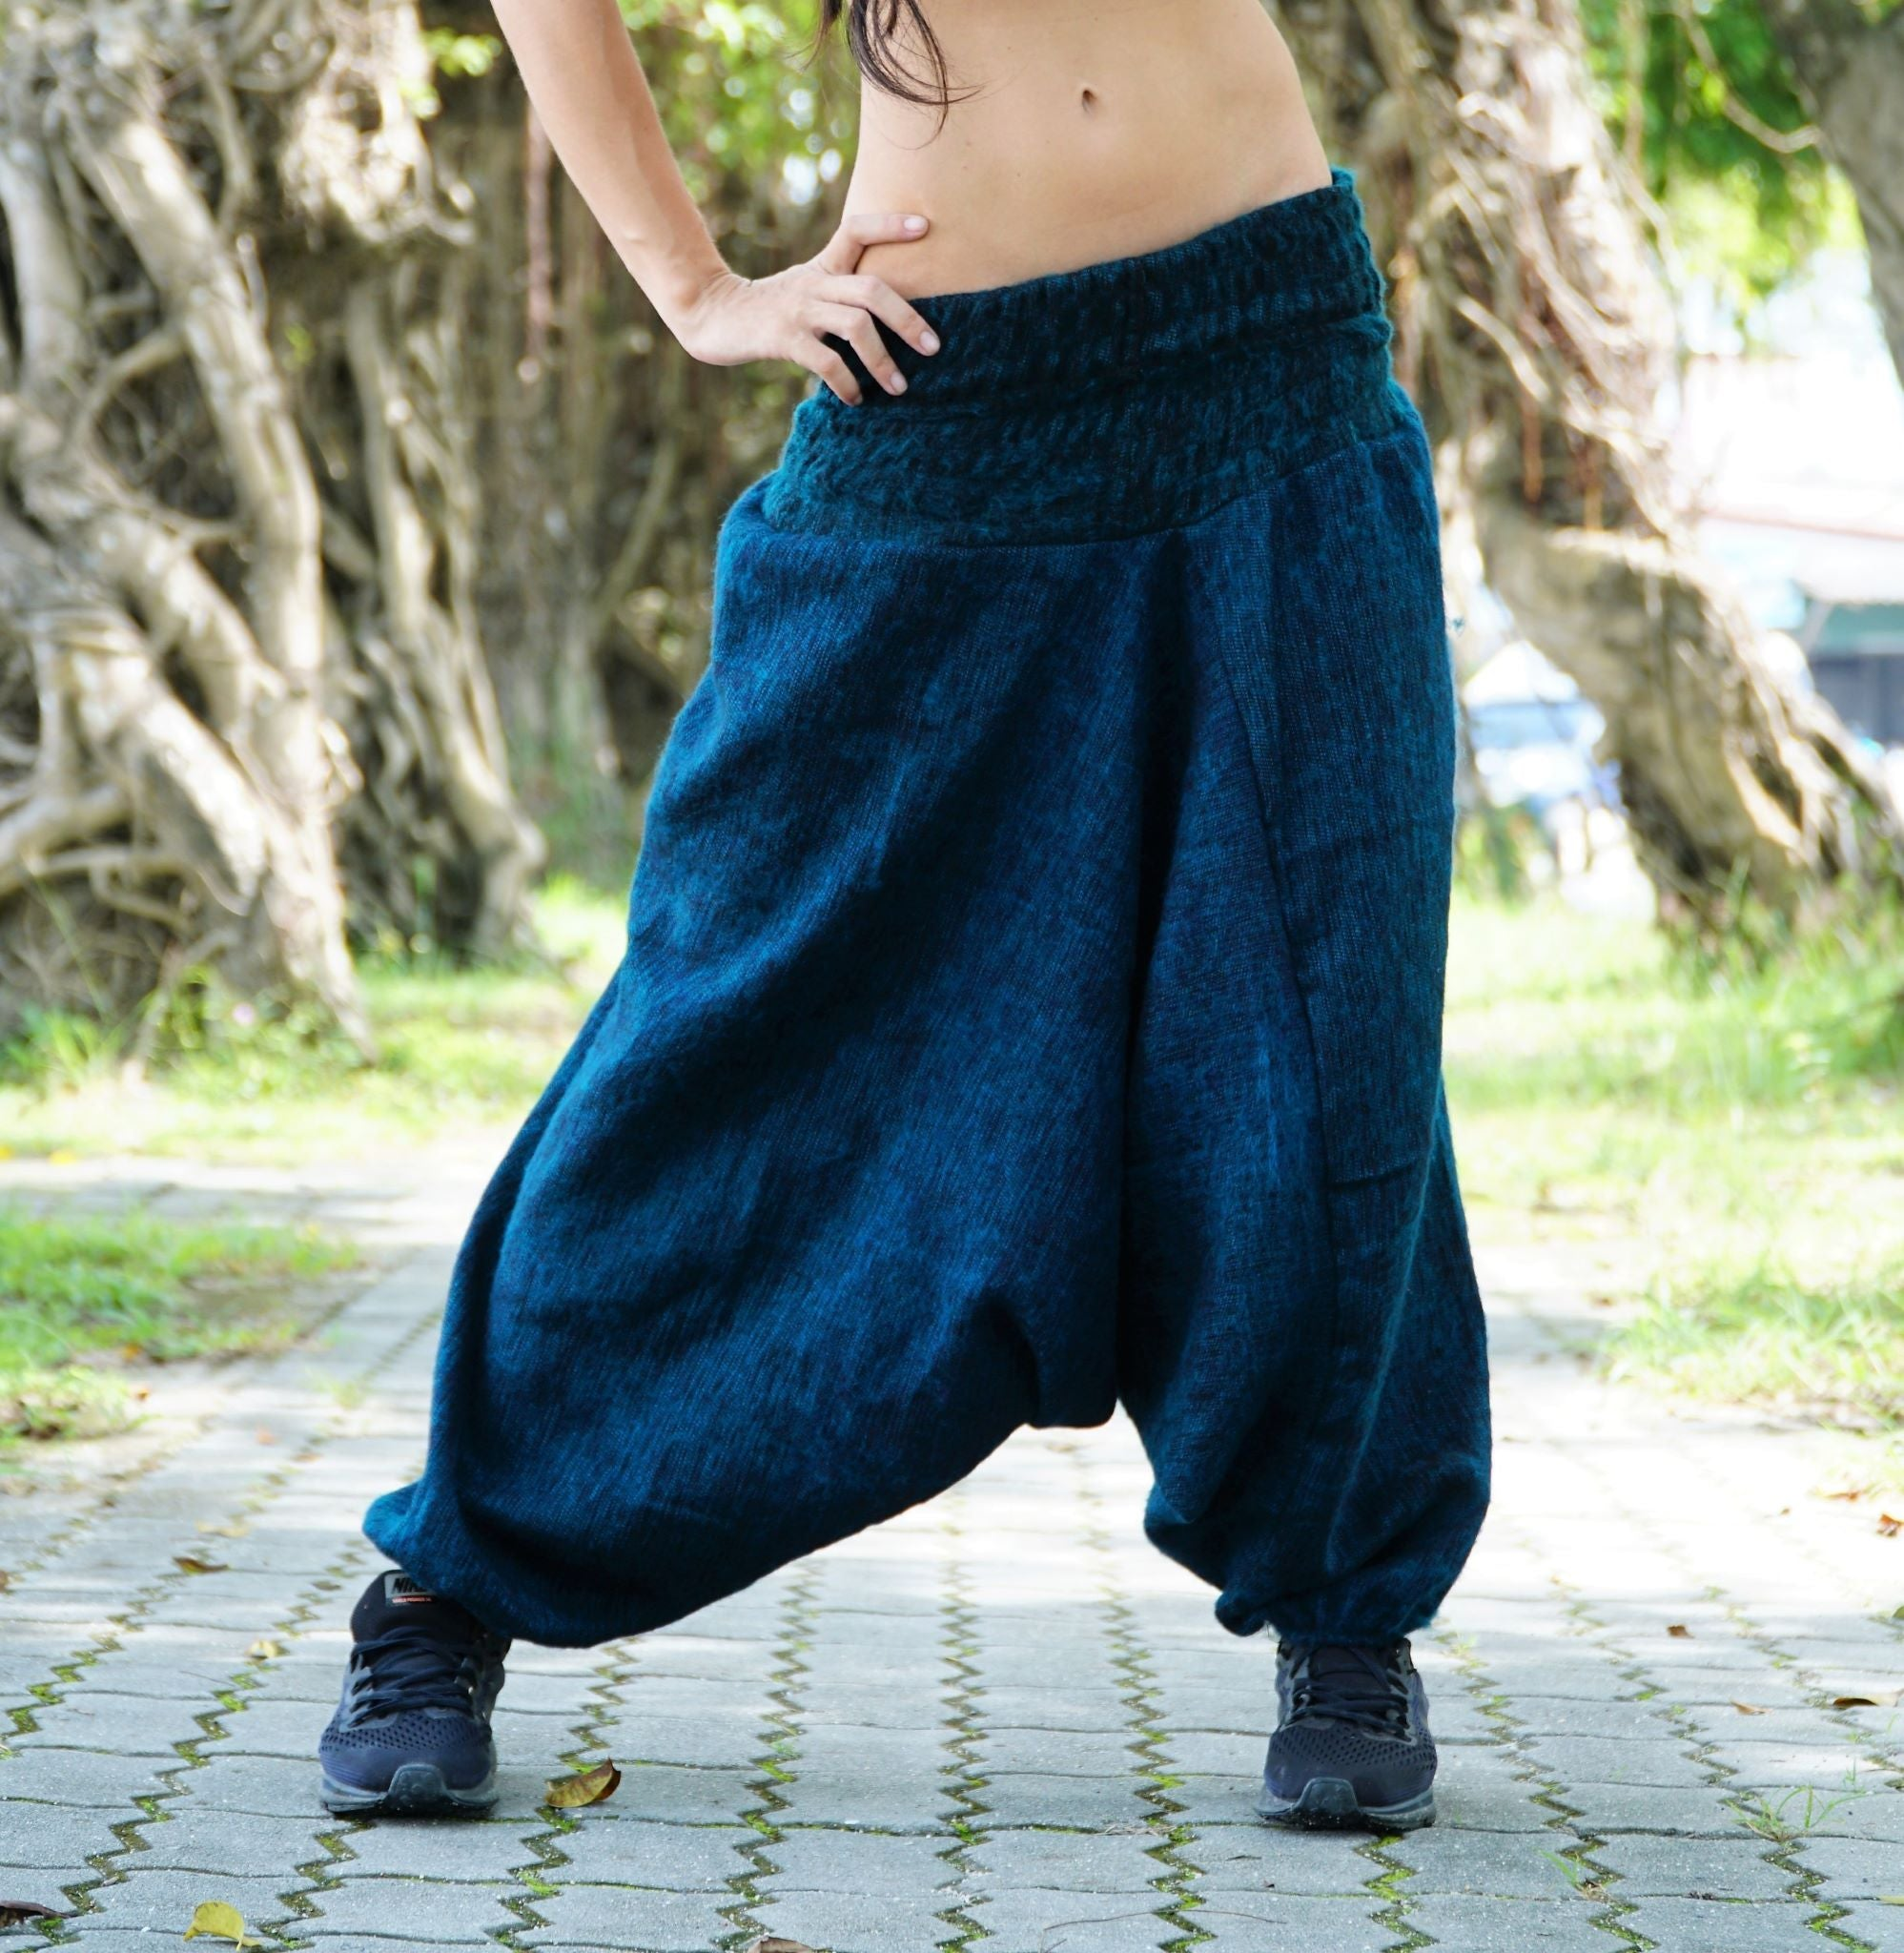 Warm Harem Pants - Cashmilon - Blue & Black Mix